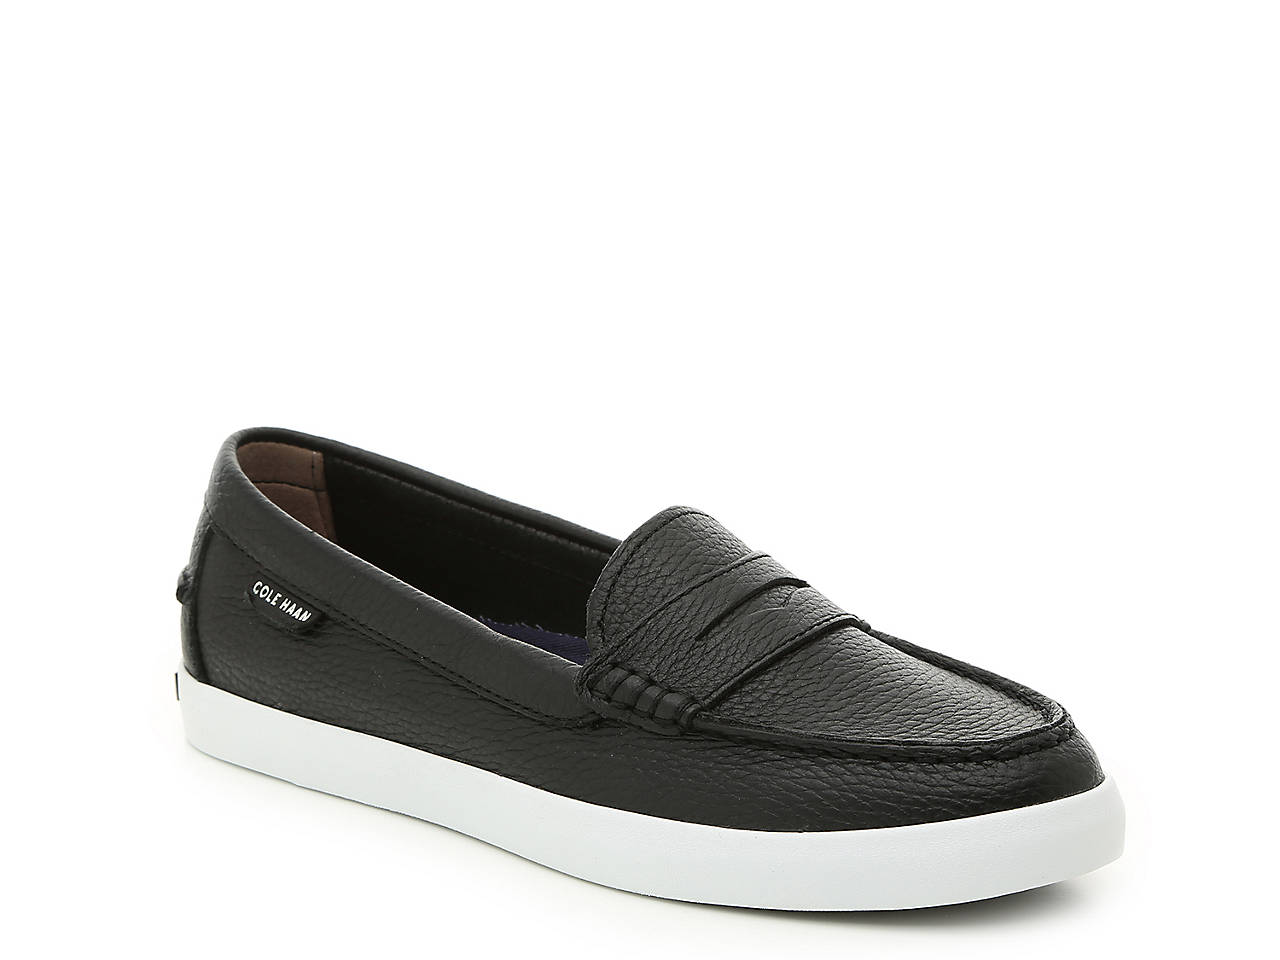 aeec7fcc9e572 Nantucket Loafer